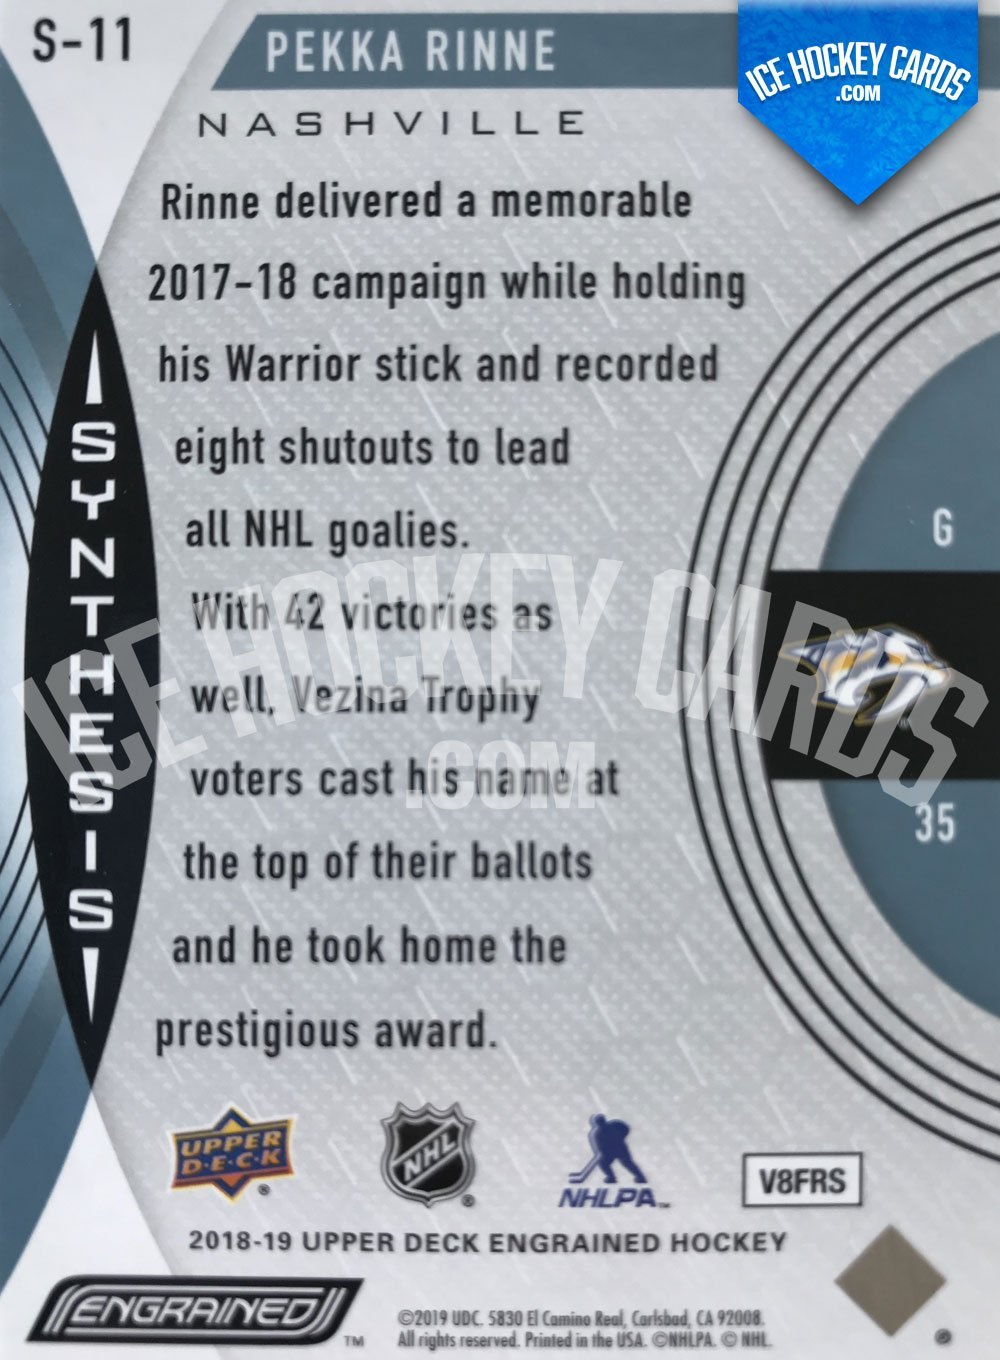 Upper Deck - Engrained 18-19 - Pekka Rinne Synthesis back